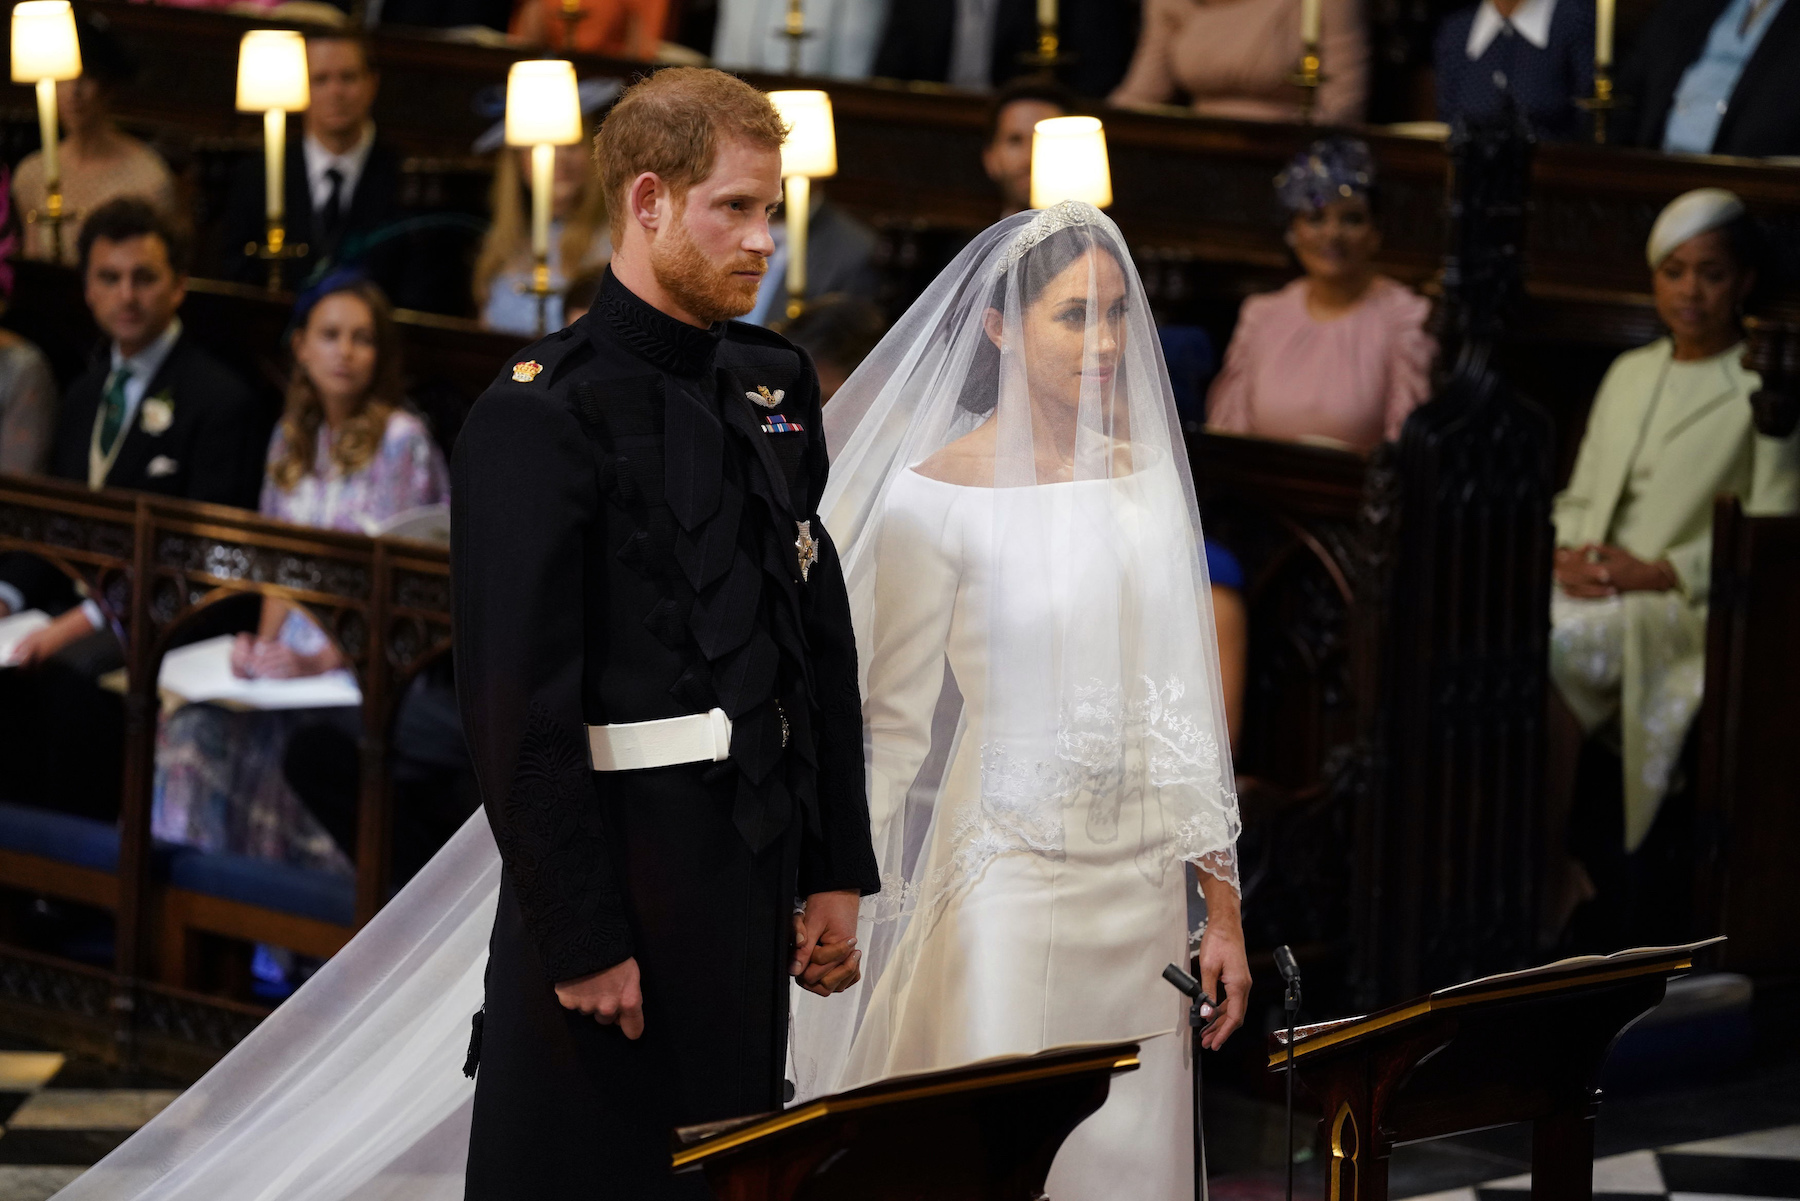 <div class='meta'><div class='origin-logo' data-origin='Creative Content'></div><span class='caption-text' data-credit='Dominic Lipinsky/PA Wire'>Prince Harry and Meghan Markle in St George's Chapel at Windsor Castle for their wedding.</span></div>